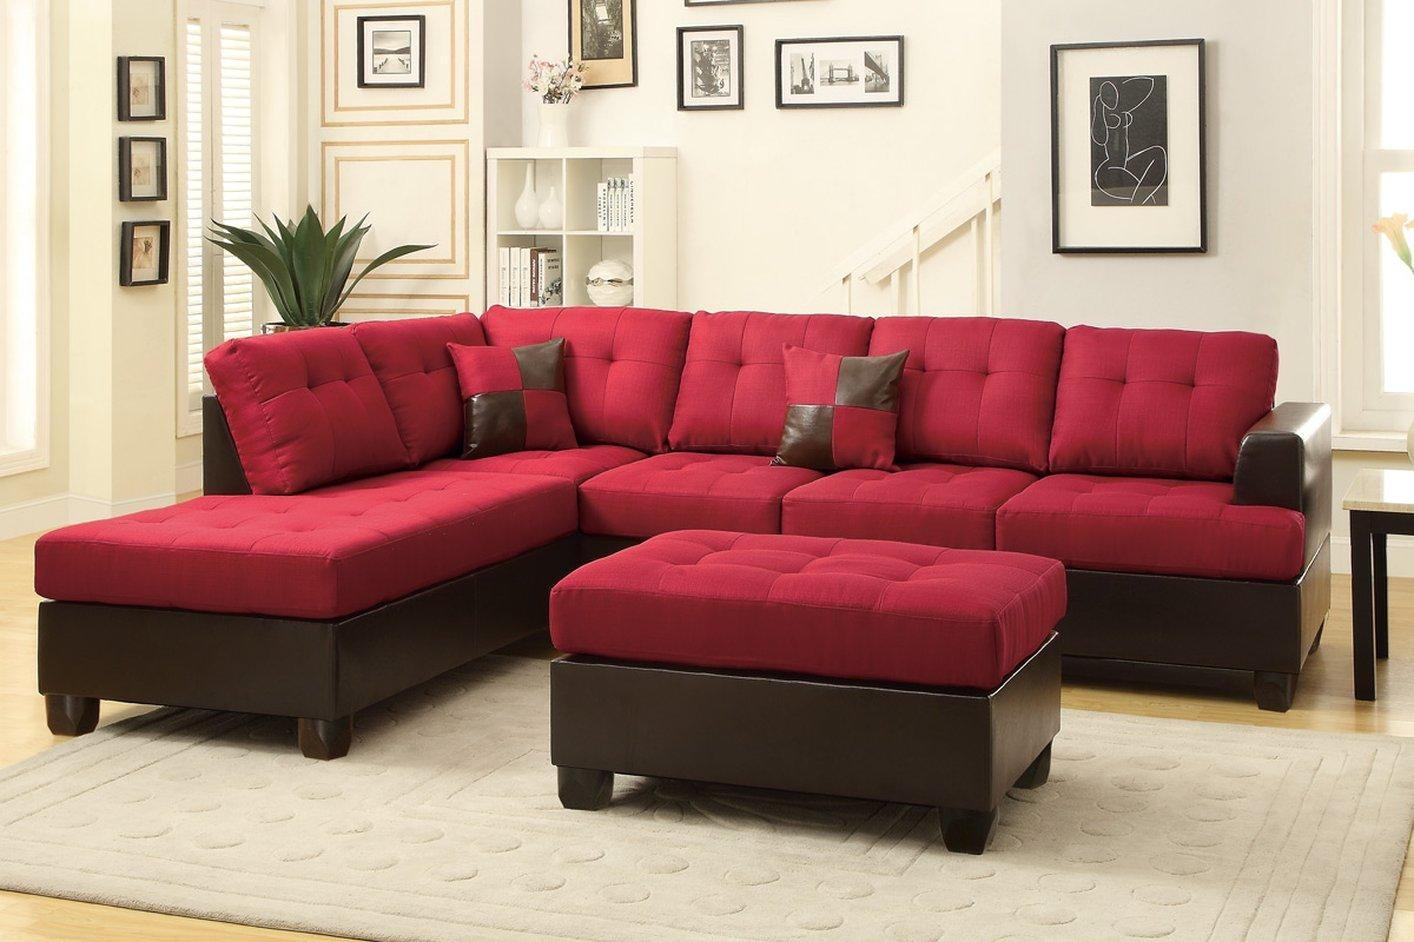 Red And Black Sectional Sofa | Rockdov Home Design Inside Red Black Sectional Sofa (Image 10 of 20)